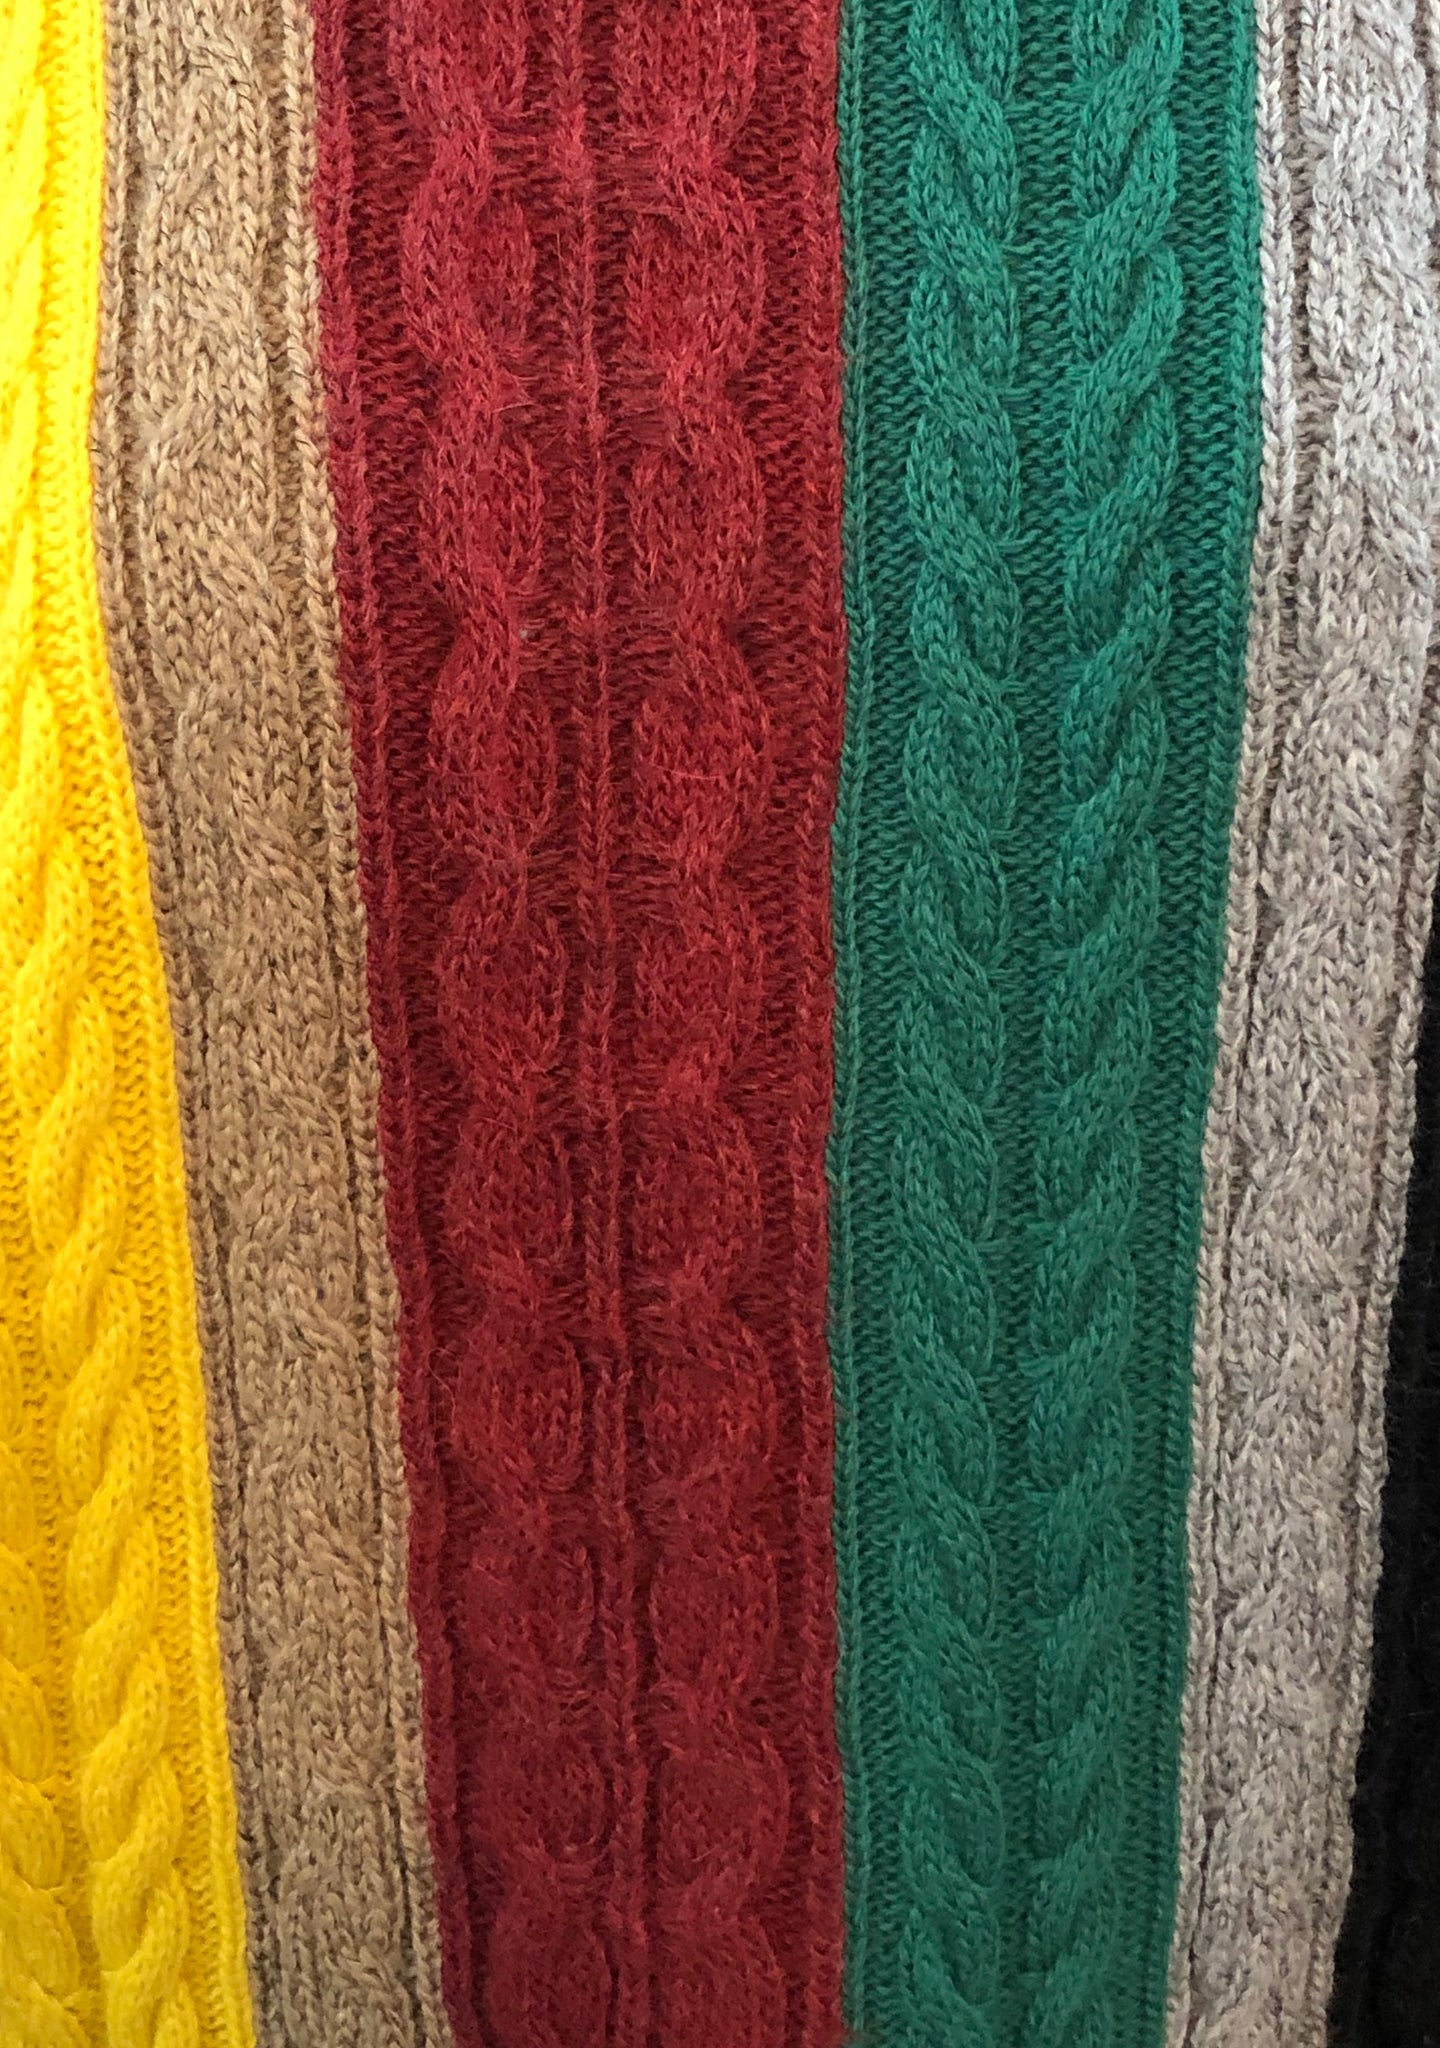 Lifetime Versace Oversized cable Knit Striped Sweater Detail 3 of 3